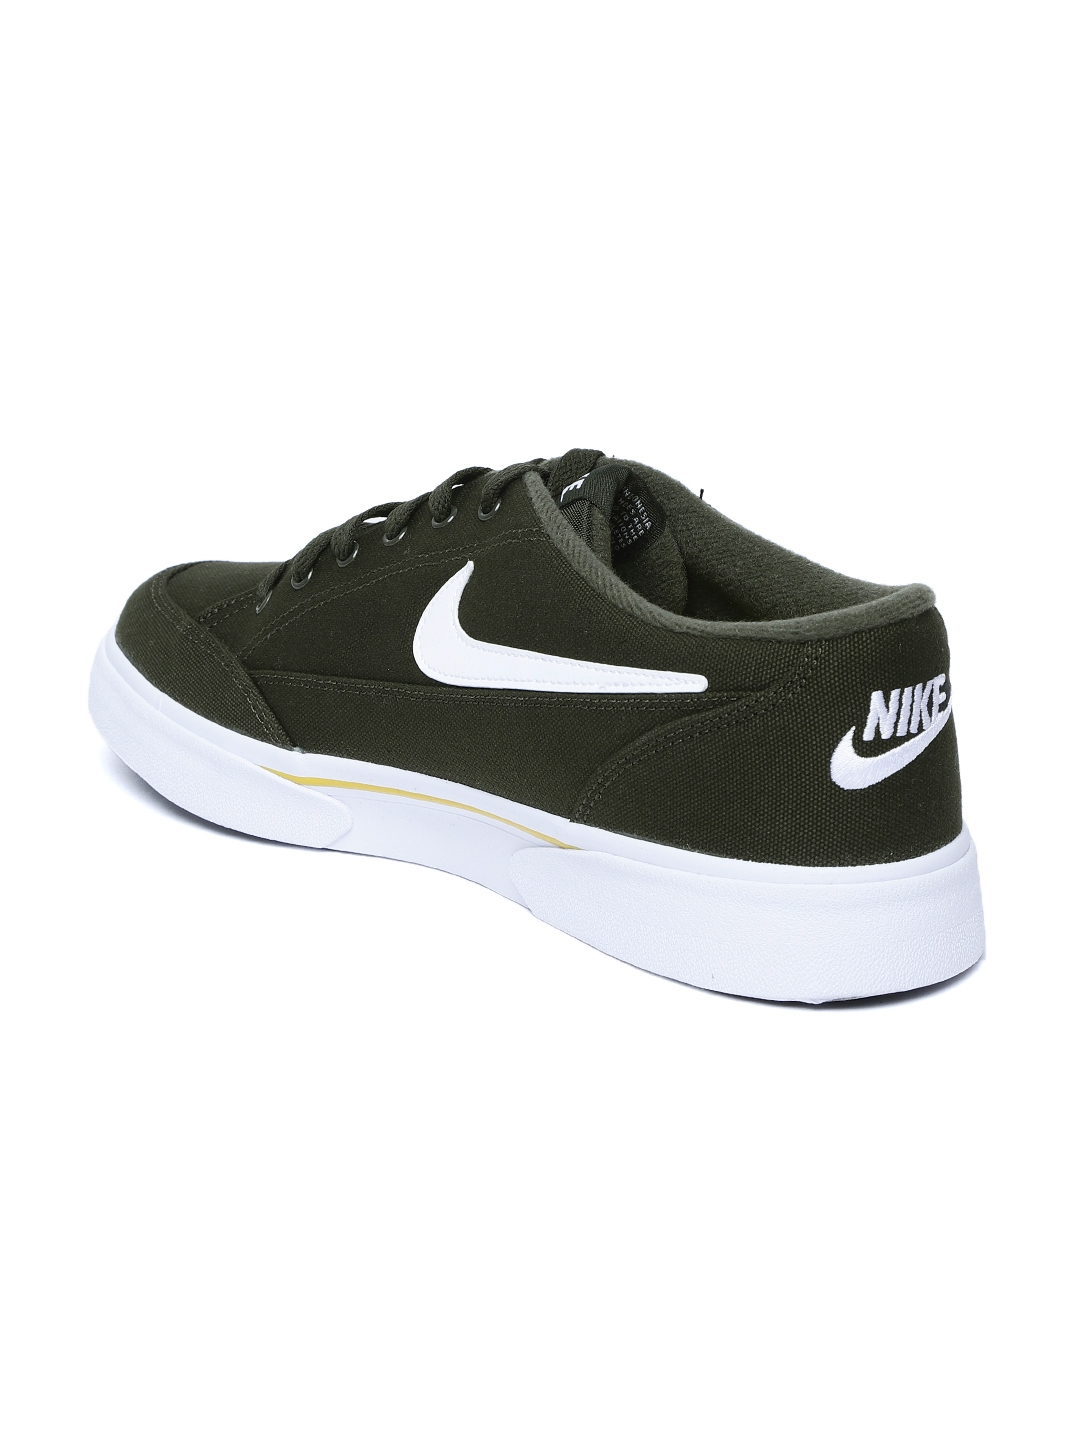 the latest 62515 aaf9d Nike Men Olive Green GTS 16 Sneakers